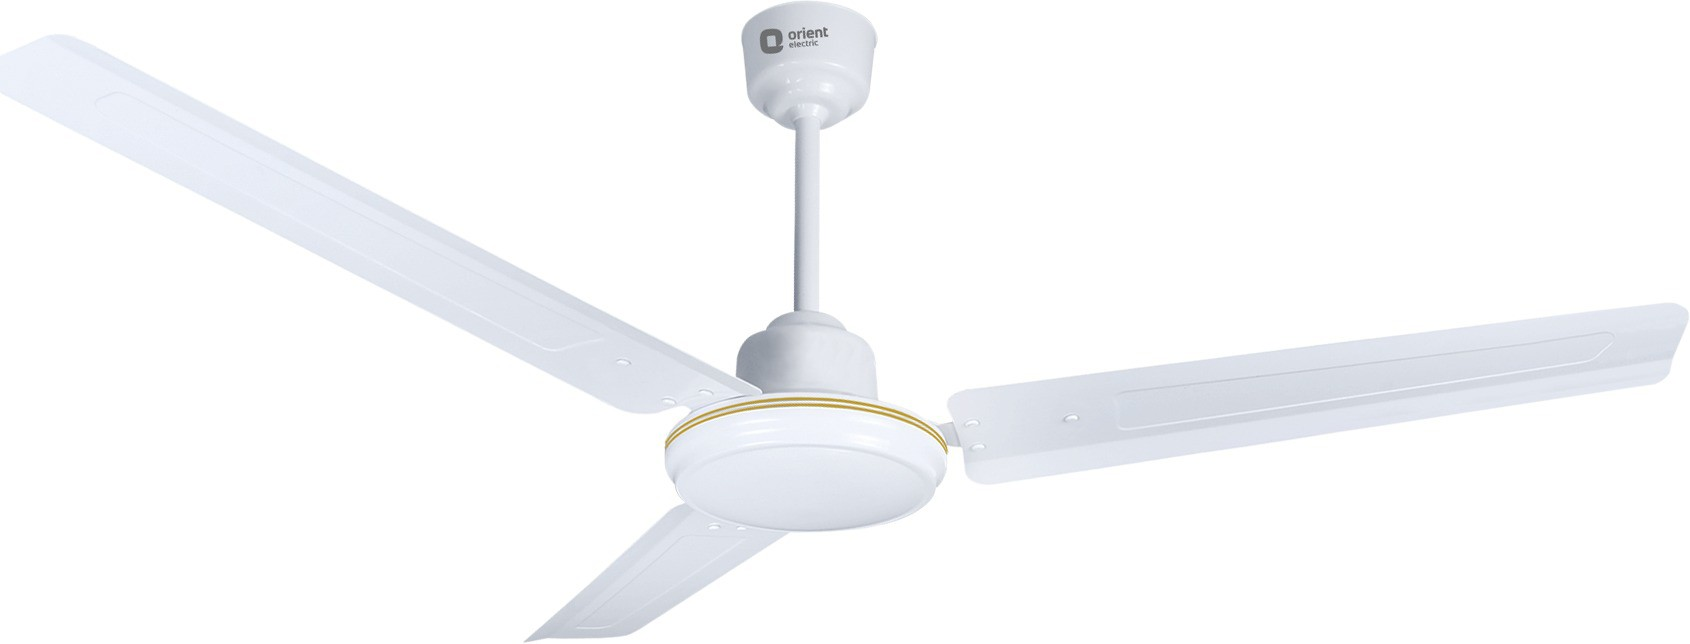 Orient new air 1400mm 3 blade ceiling fan price in india 18 mar orient new air 1400mm 3 blade ceiling fanwhite aloadofball Gallery